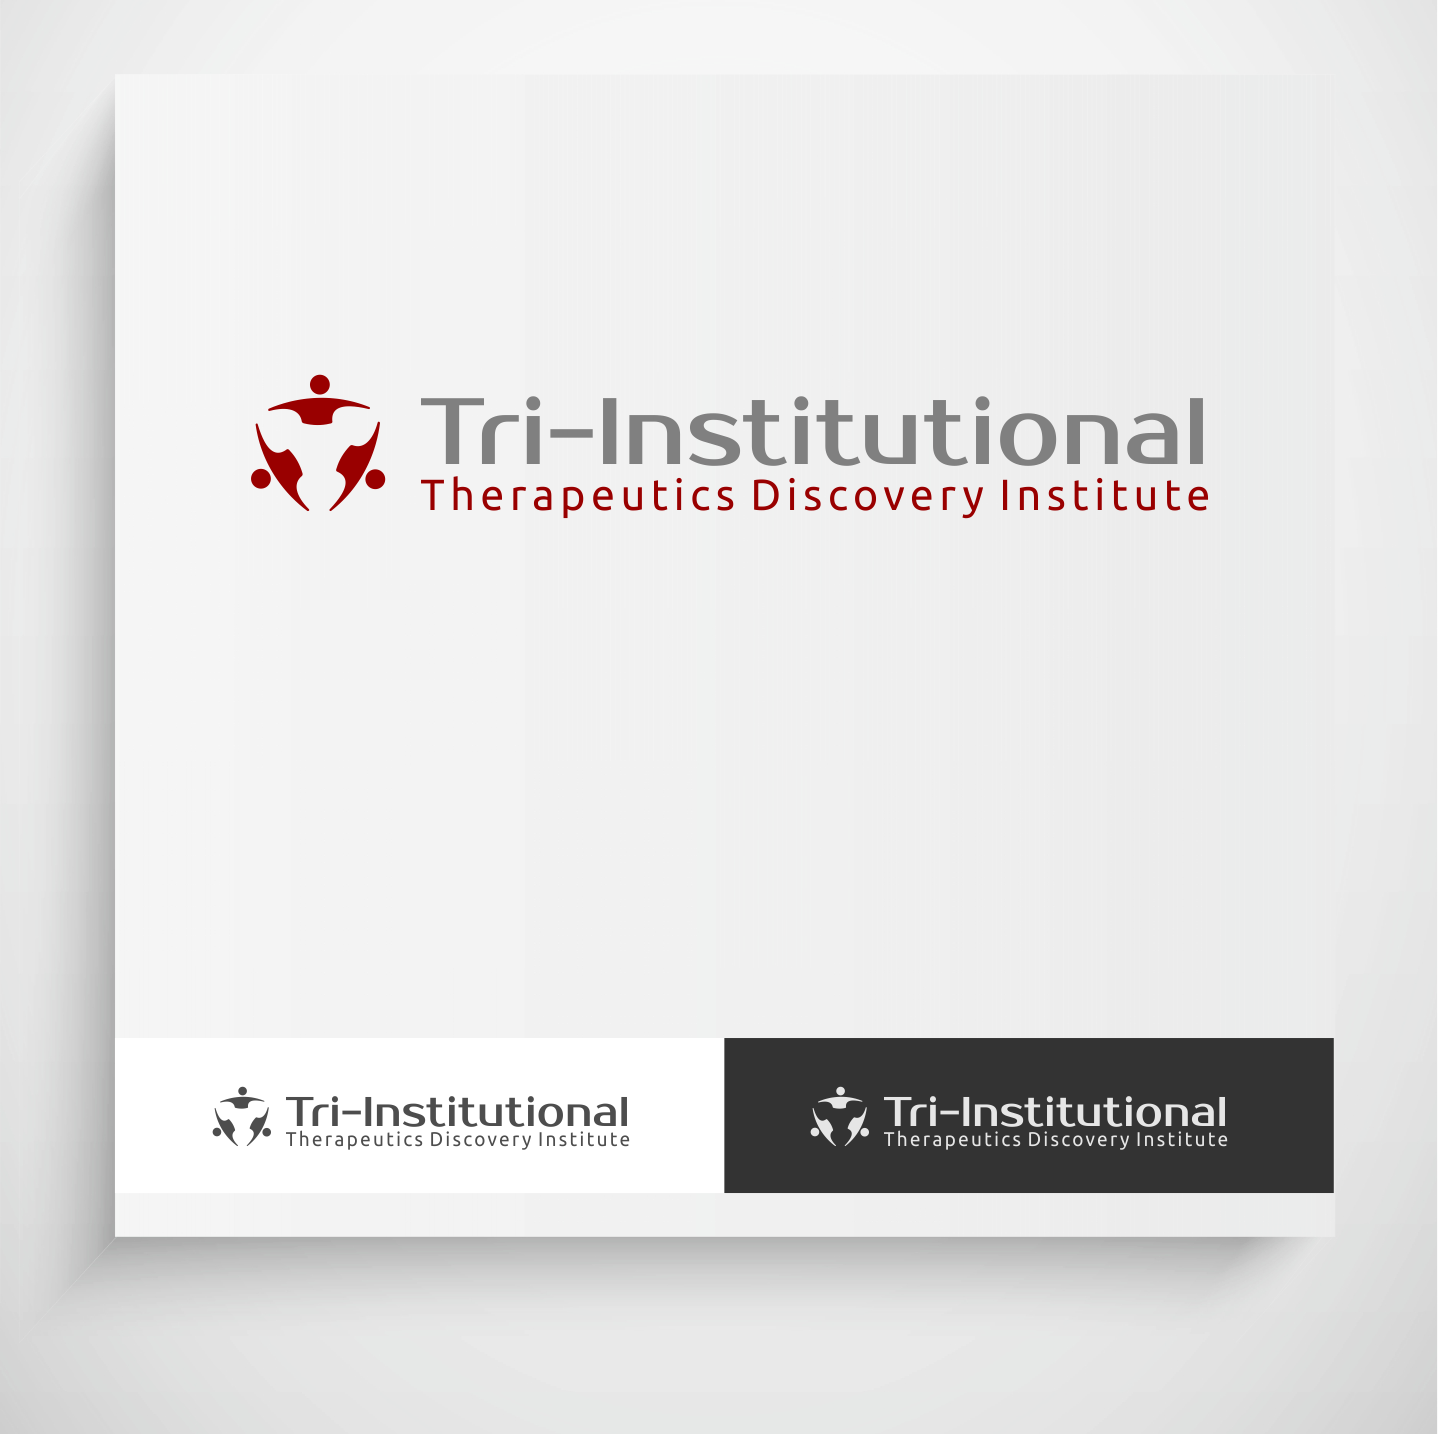 Logo Design by Krzysztof Mokanek - Entry No. 79 in the Logo Design Contest Inspiring Logo Design for Tri-Institutional Therapeutics Discovery Institute.